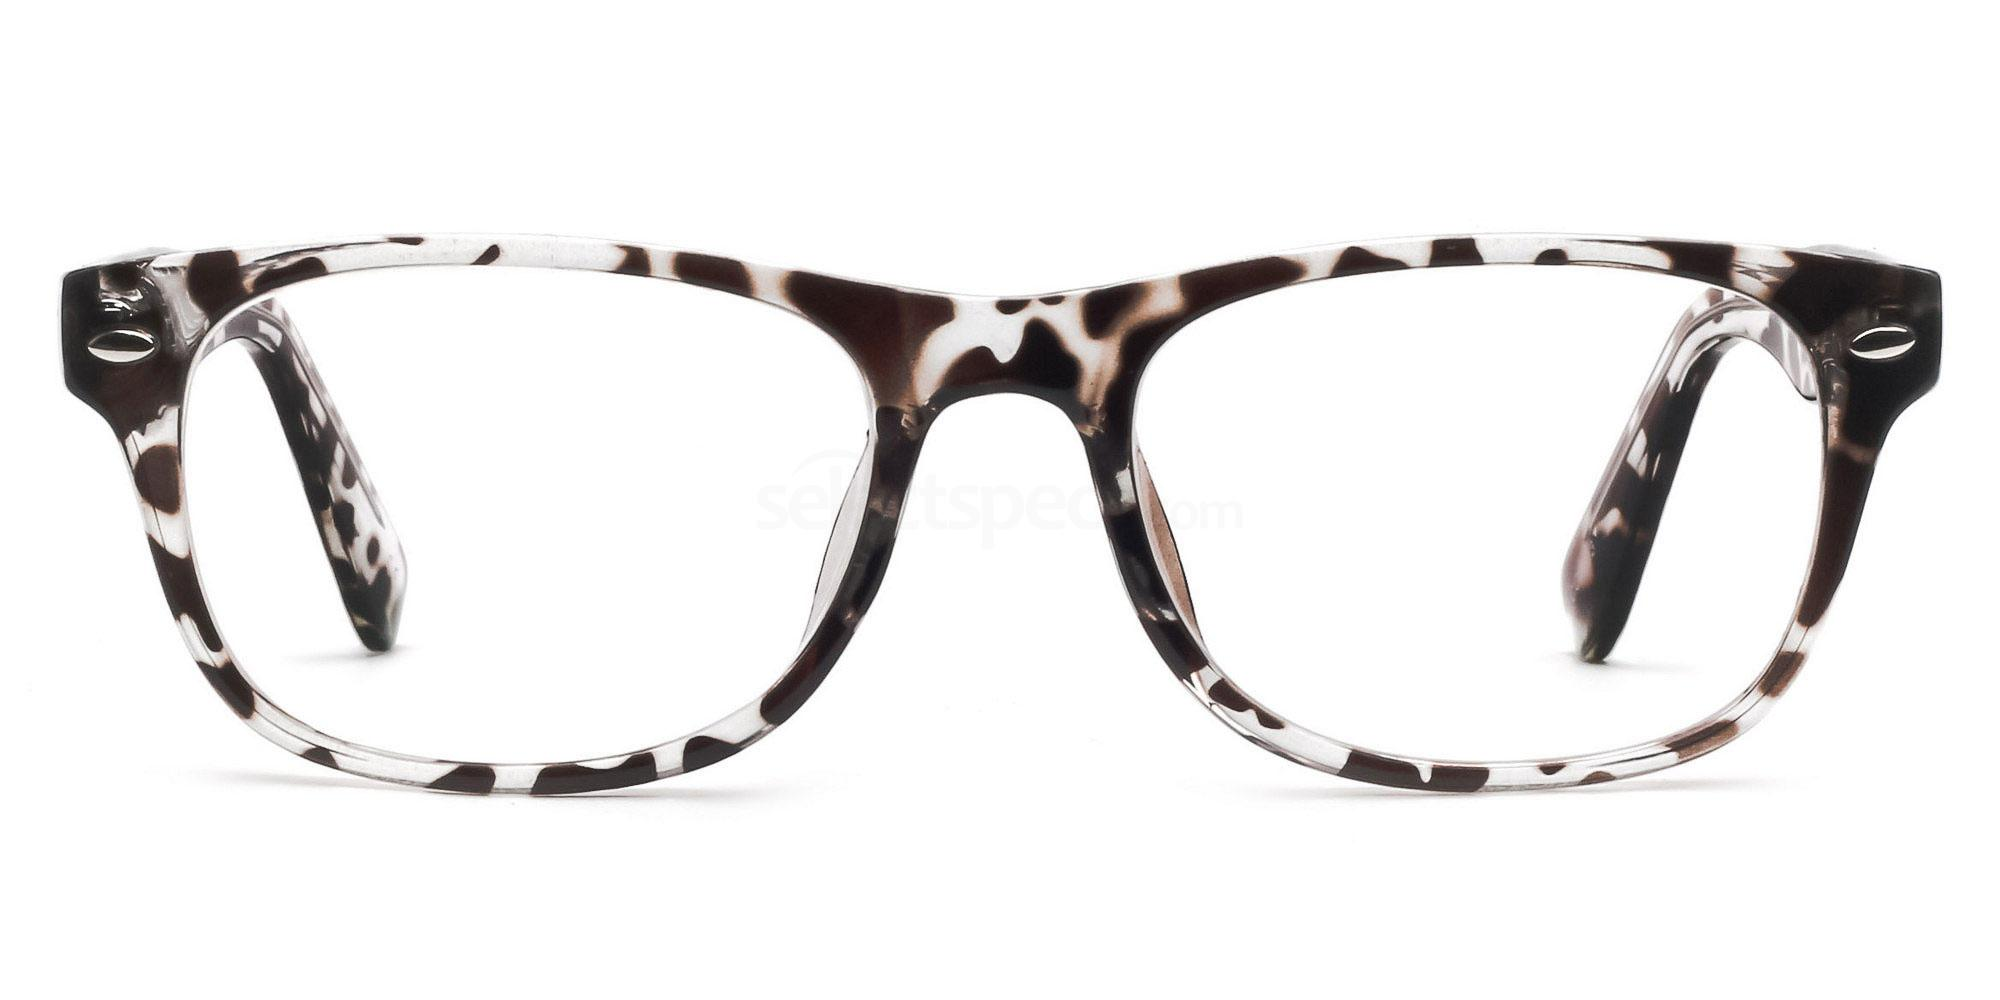 C03 P2383 - Animal Print Glasses, Savannah